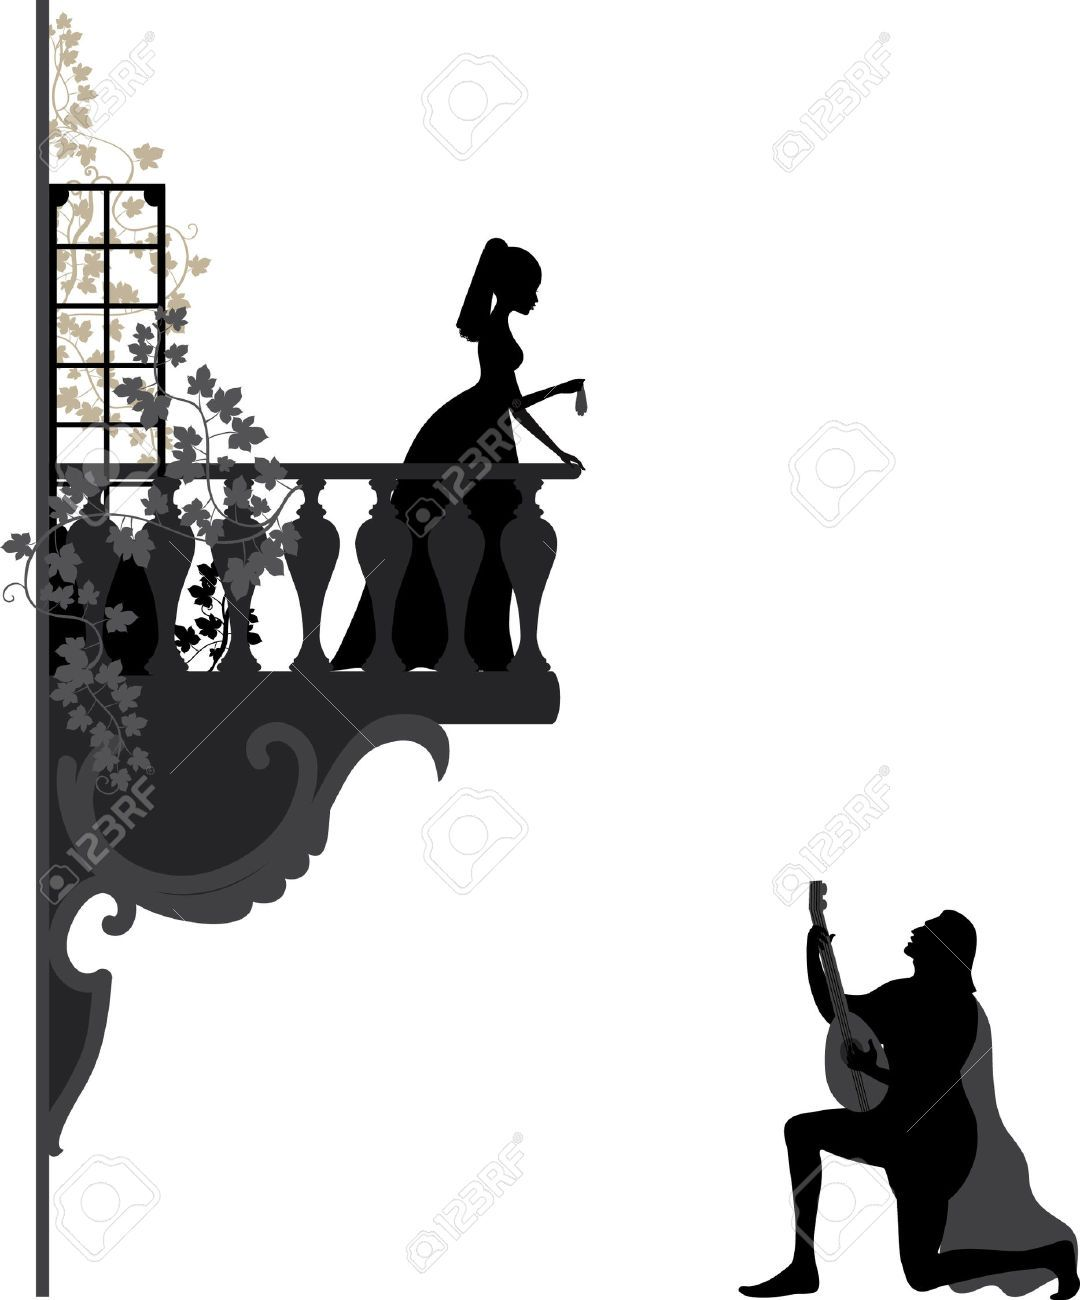 1080x1300 Image result for silhouette of romeo and juliet Engagement Party